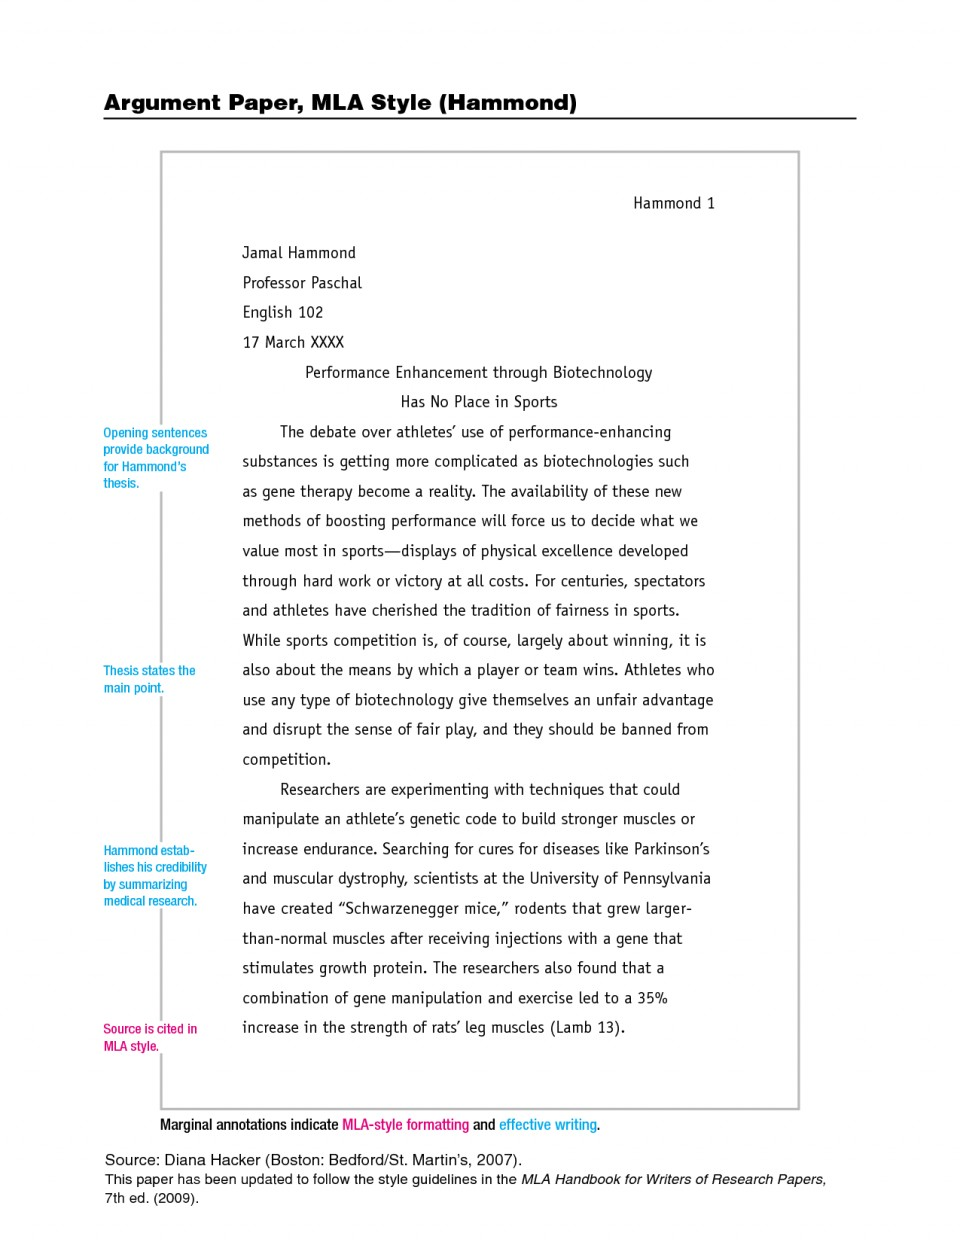 003 Chicago Style Essay Format Unforgettable Sample Paper Template 960